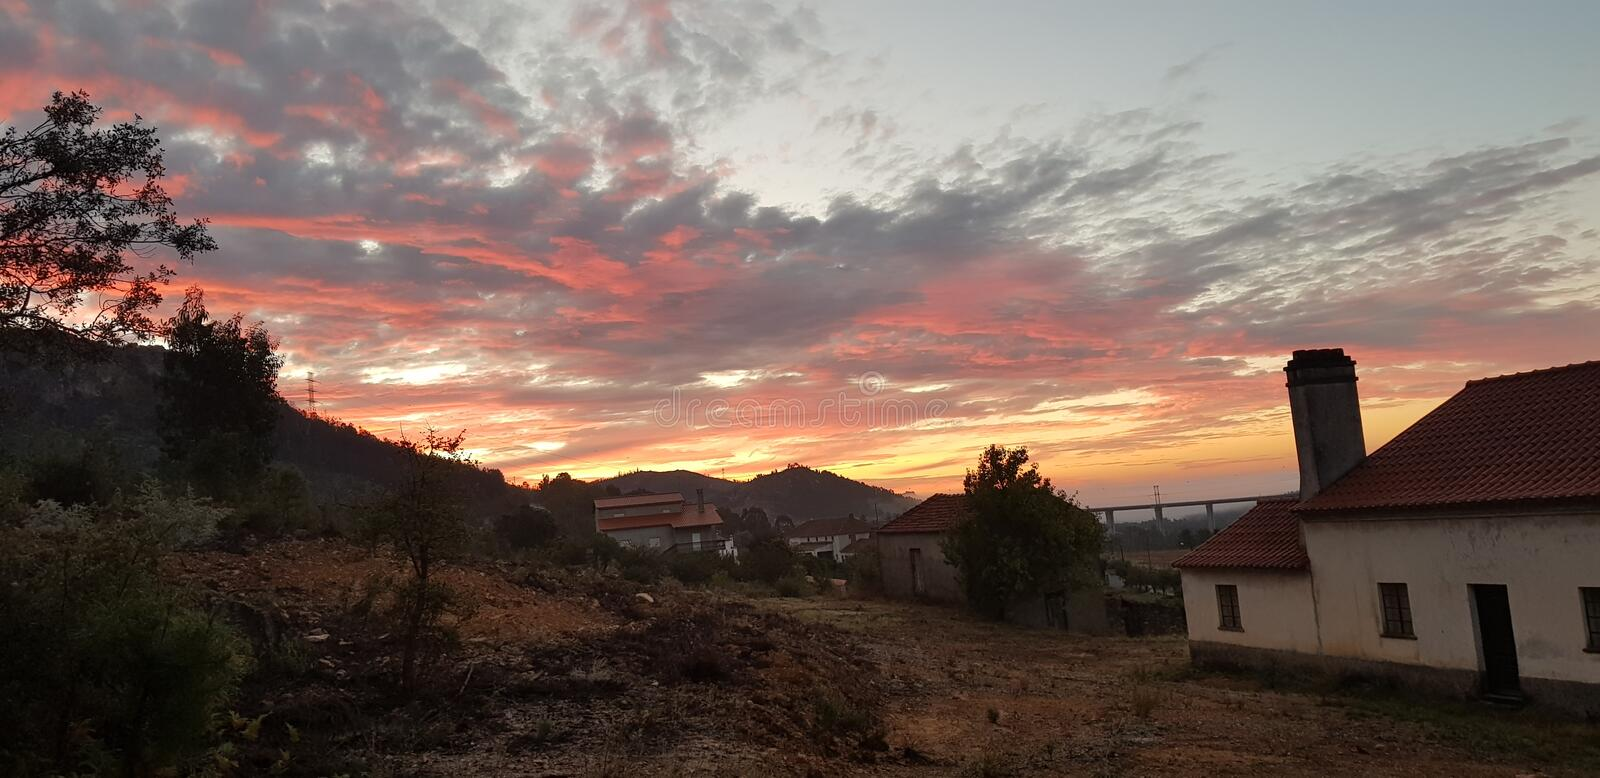 Beutiful colourful sunrise over mountain in Portugal stock photos